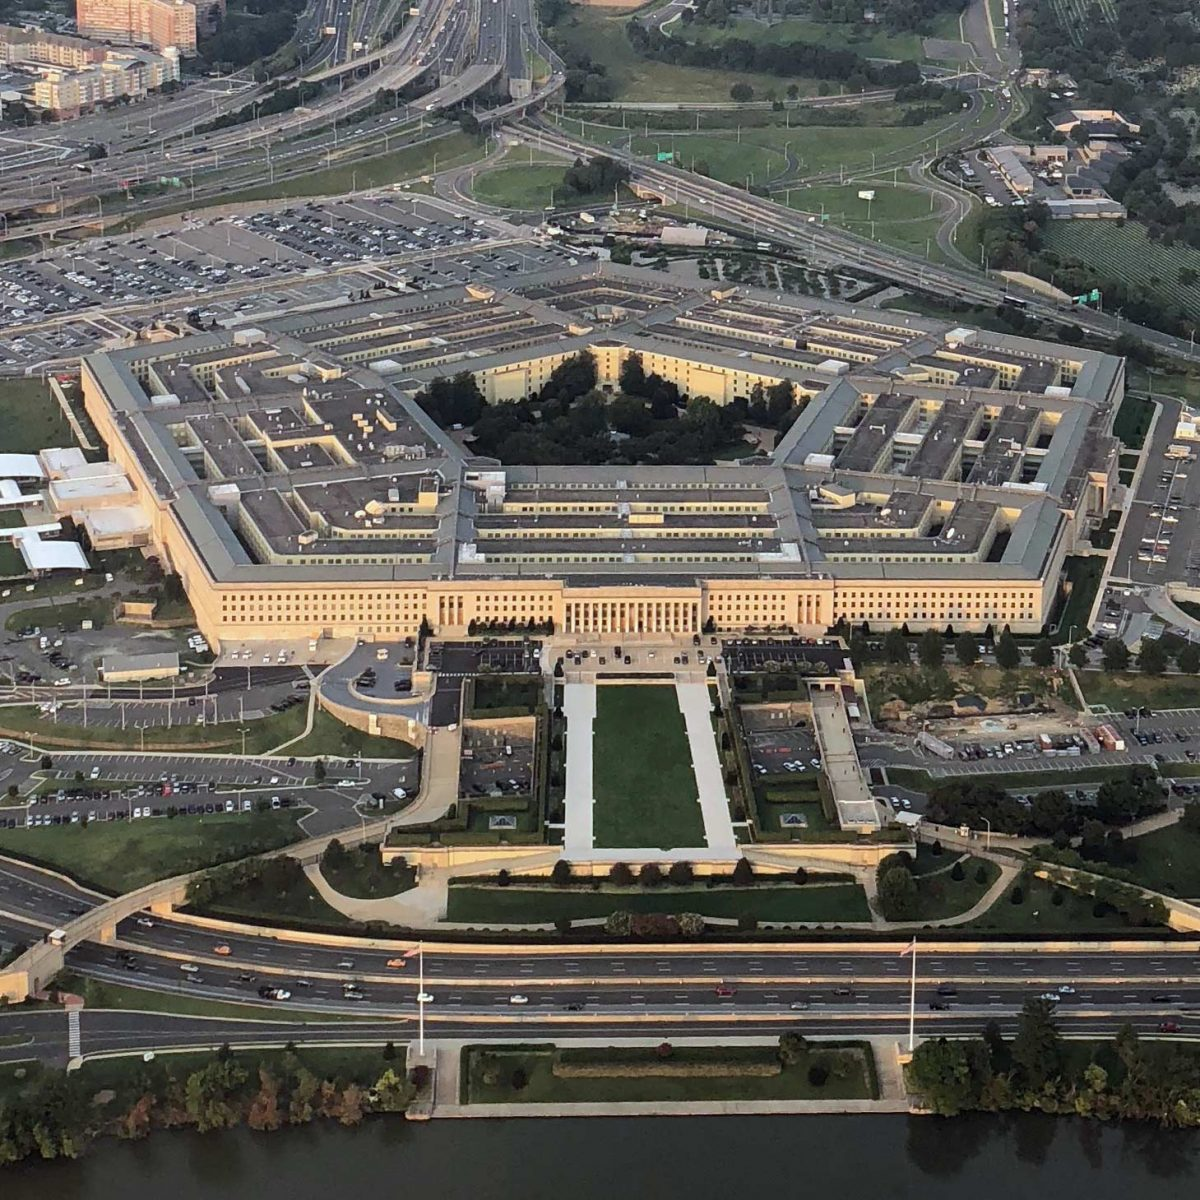 The Pentagon [photo: Touch Of Light / CC BY-SA (https://creativecommons.org/licenses/by-sa/4.0)]